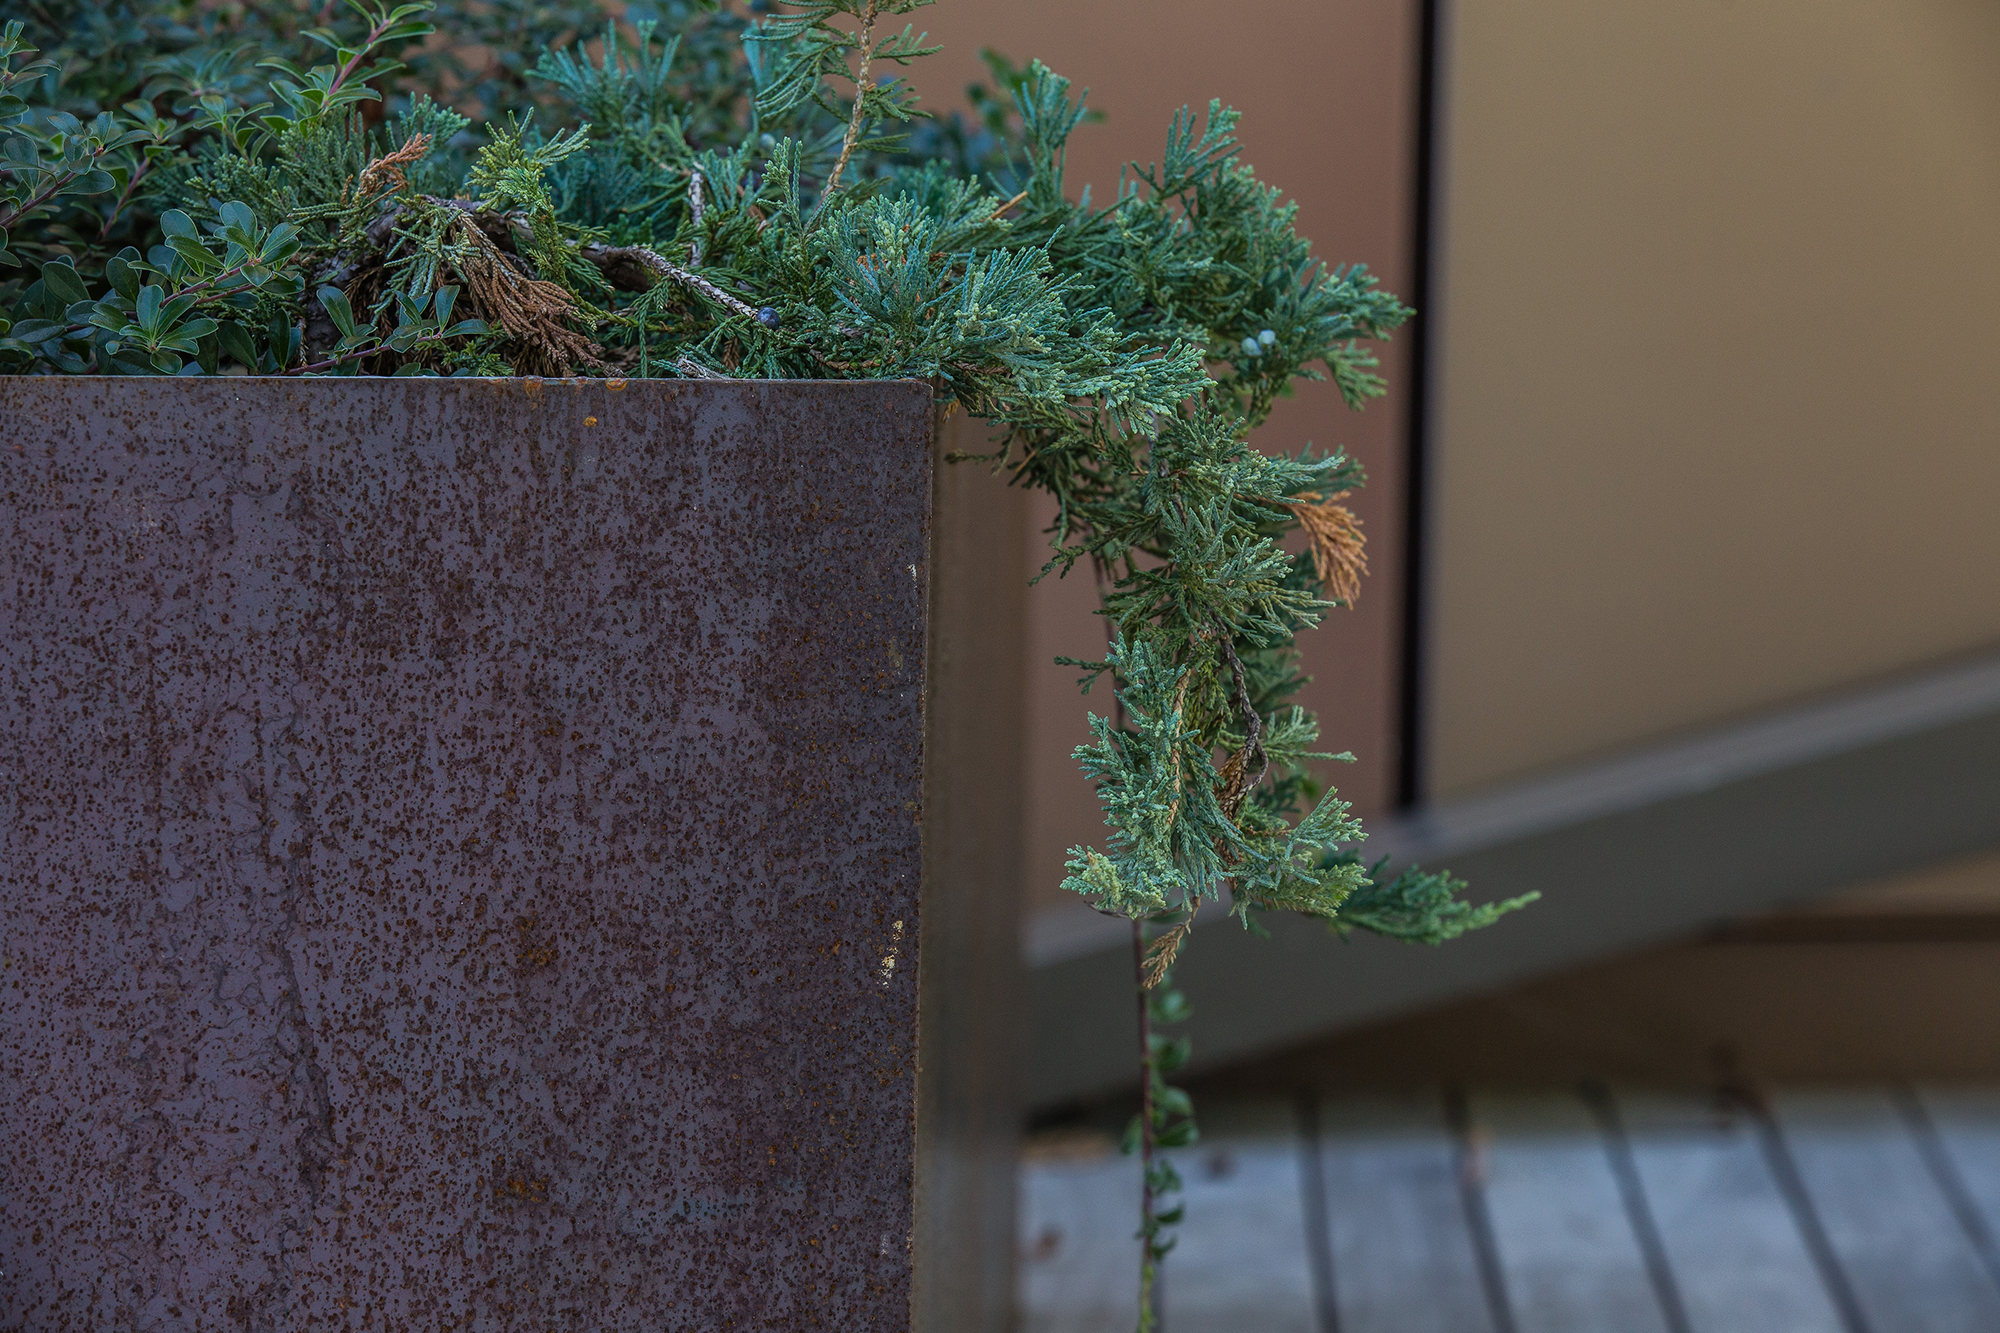 Weathering Steel  Planter at Rooftop Courtyard University of Massachusetts Amherst